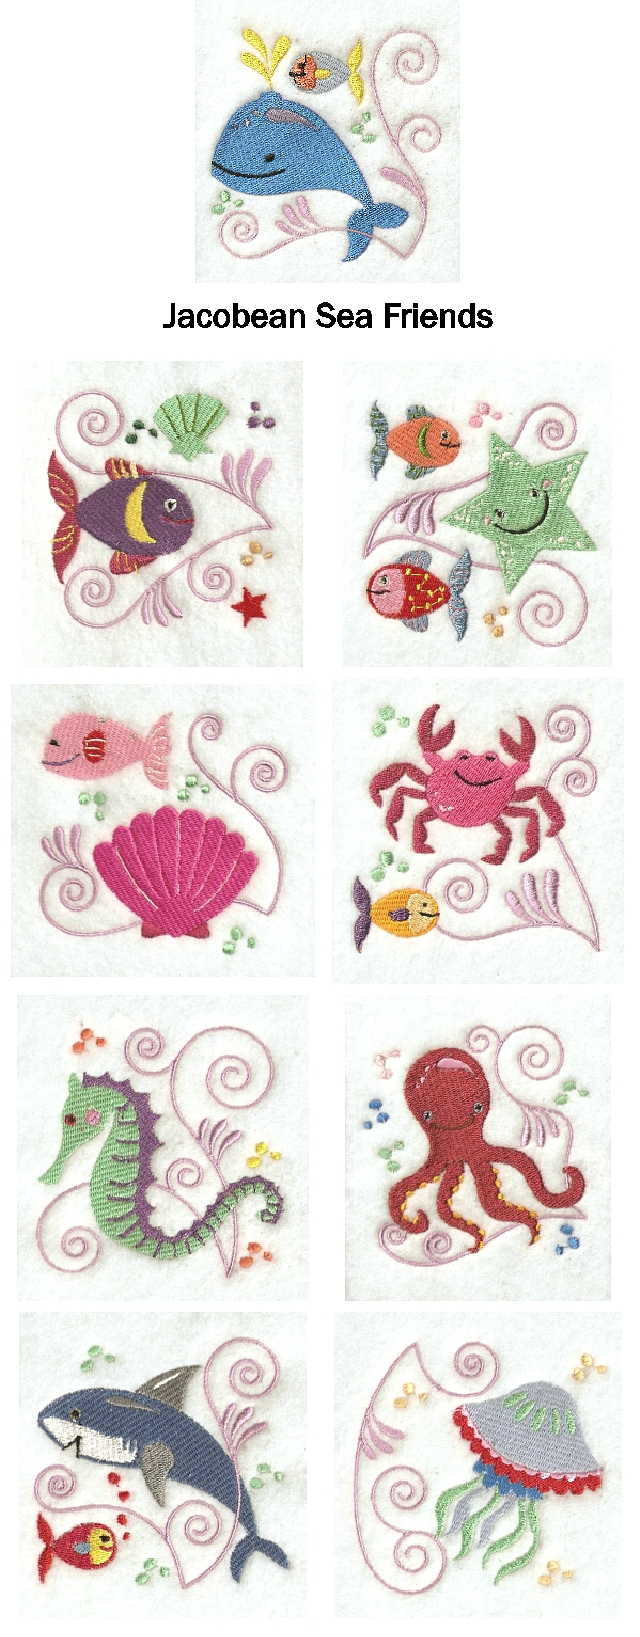 Jacobean Sea Friends Embroidery Machine Design Details